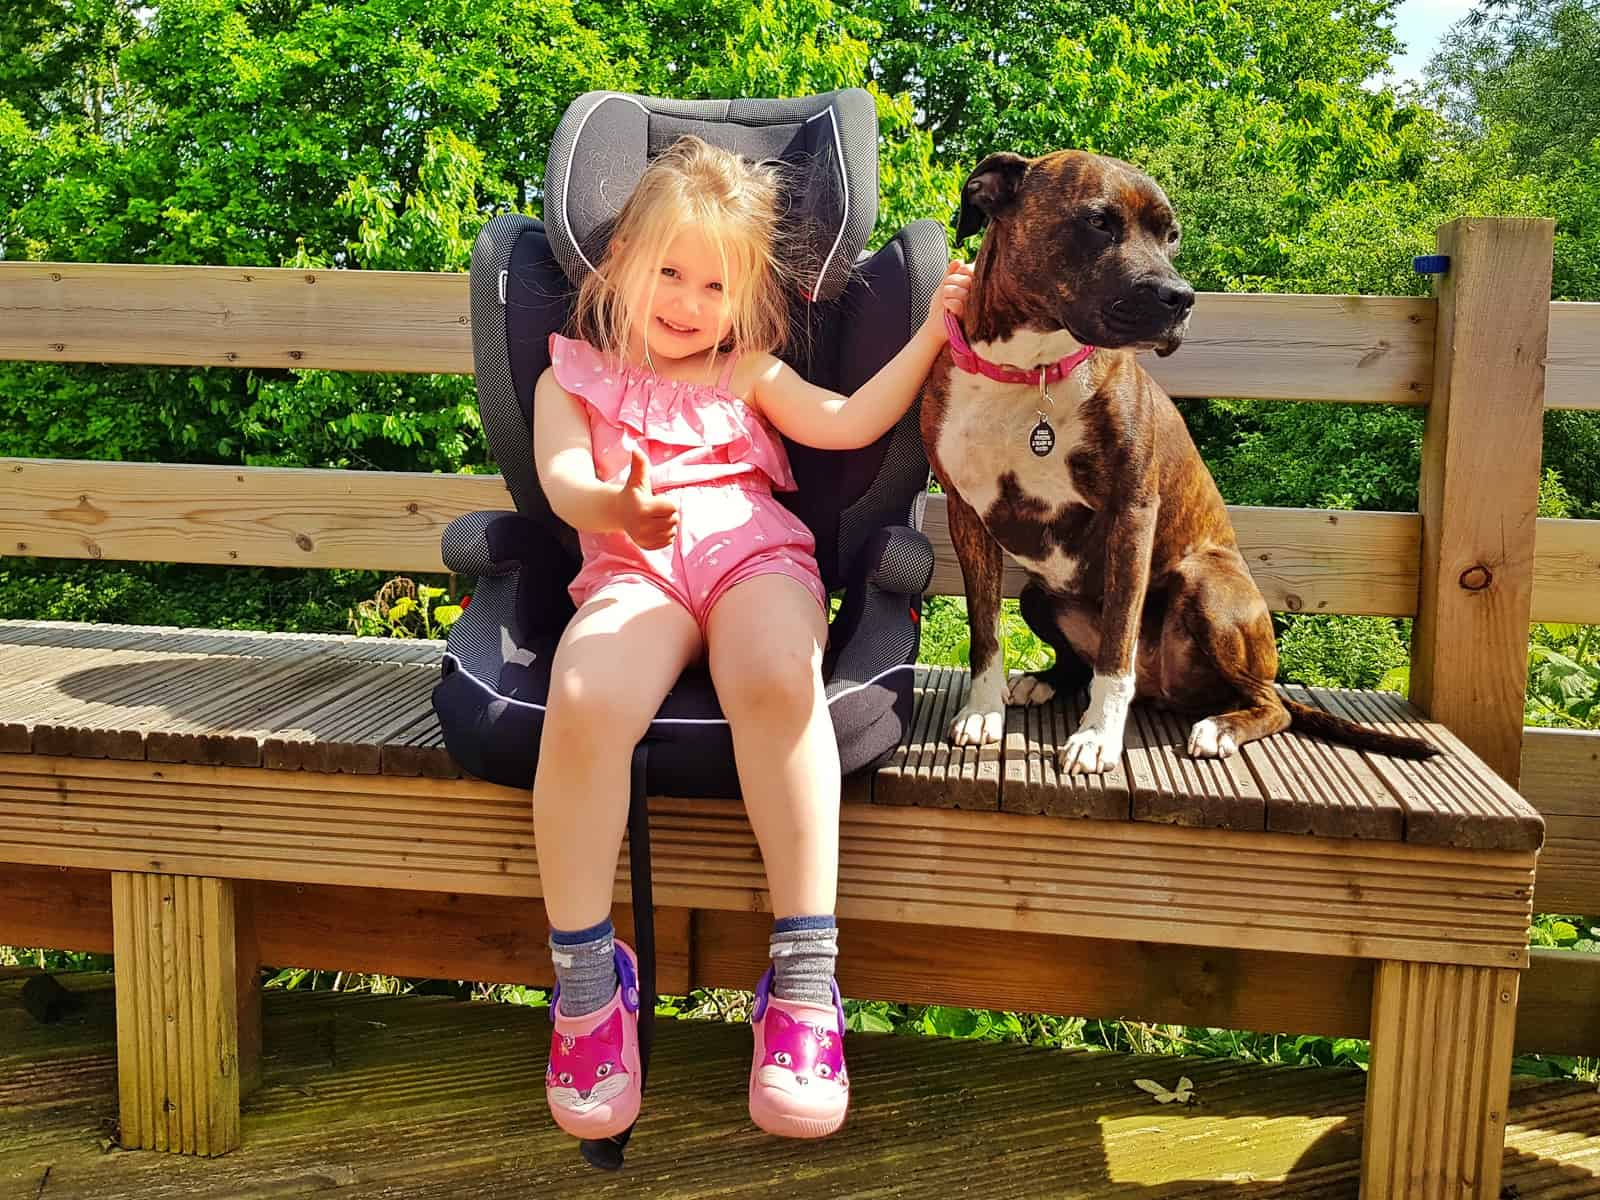 Little girl in pink outfit sat in car seat on a bench outside with dog beside her